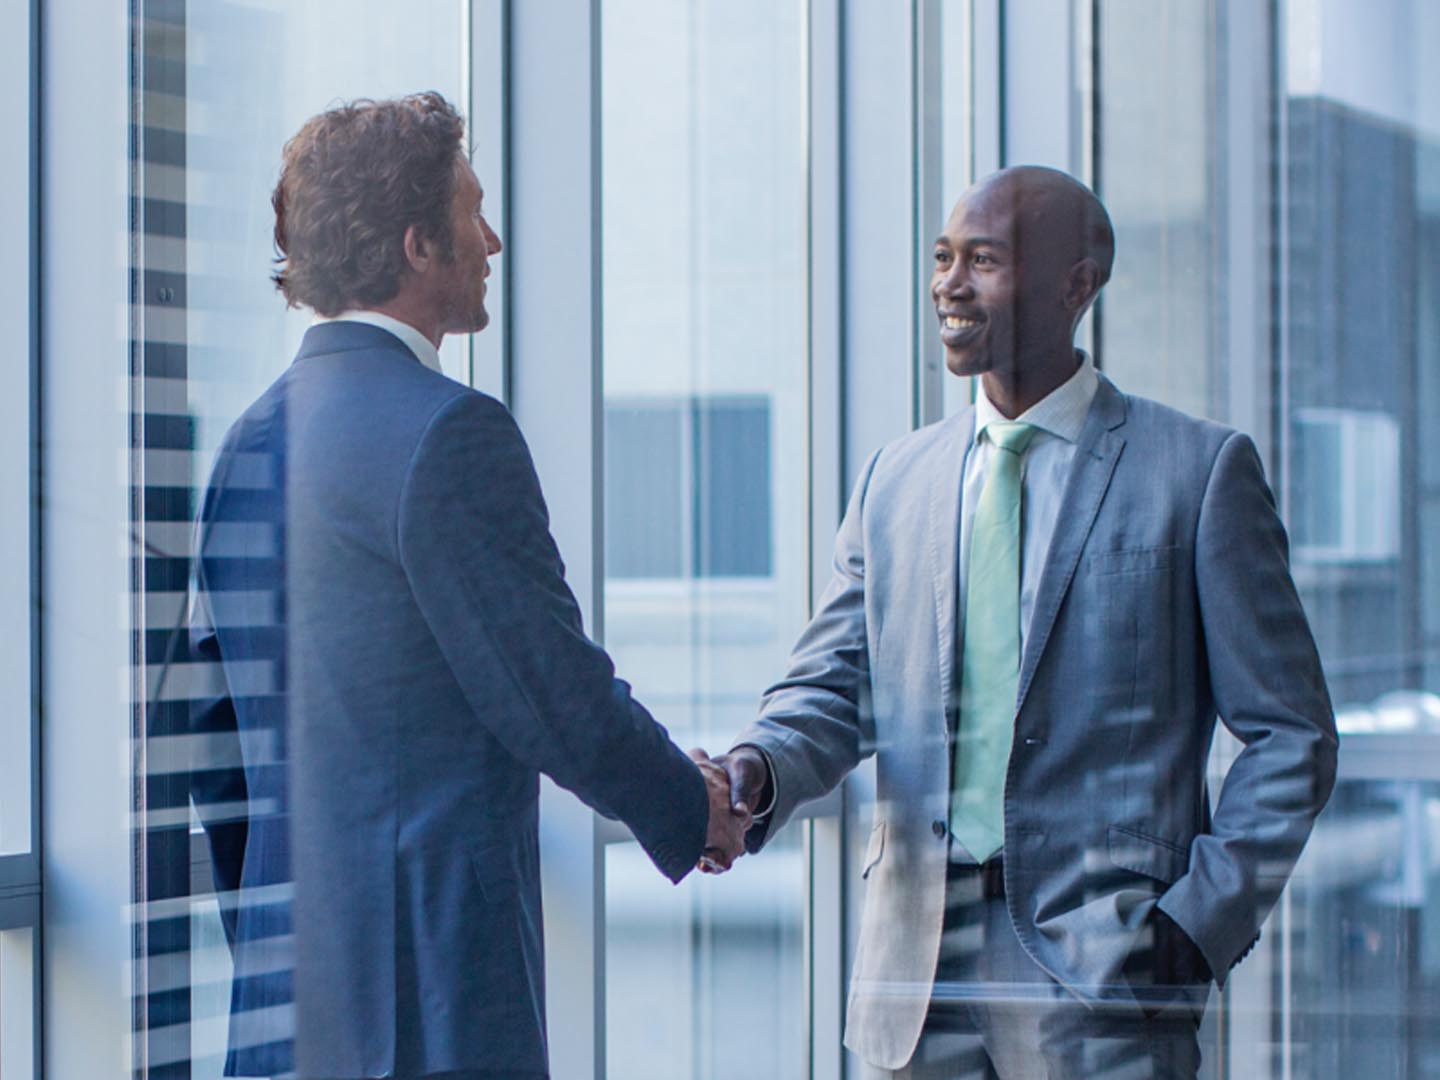 two businessmen shaking hands in office.